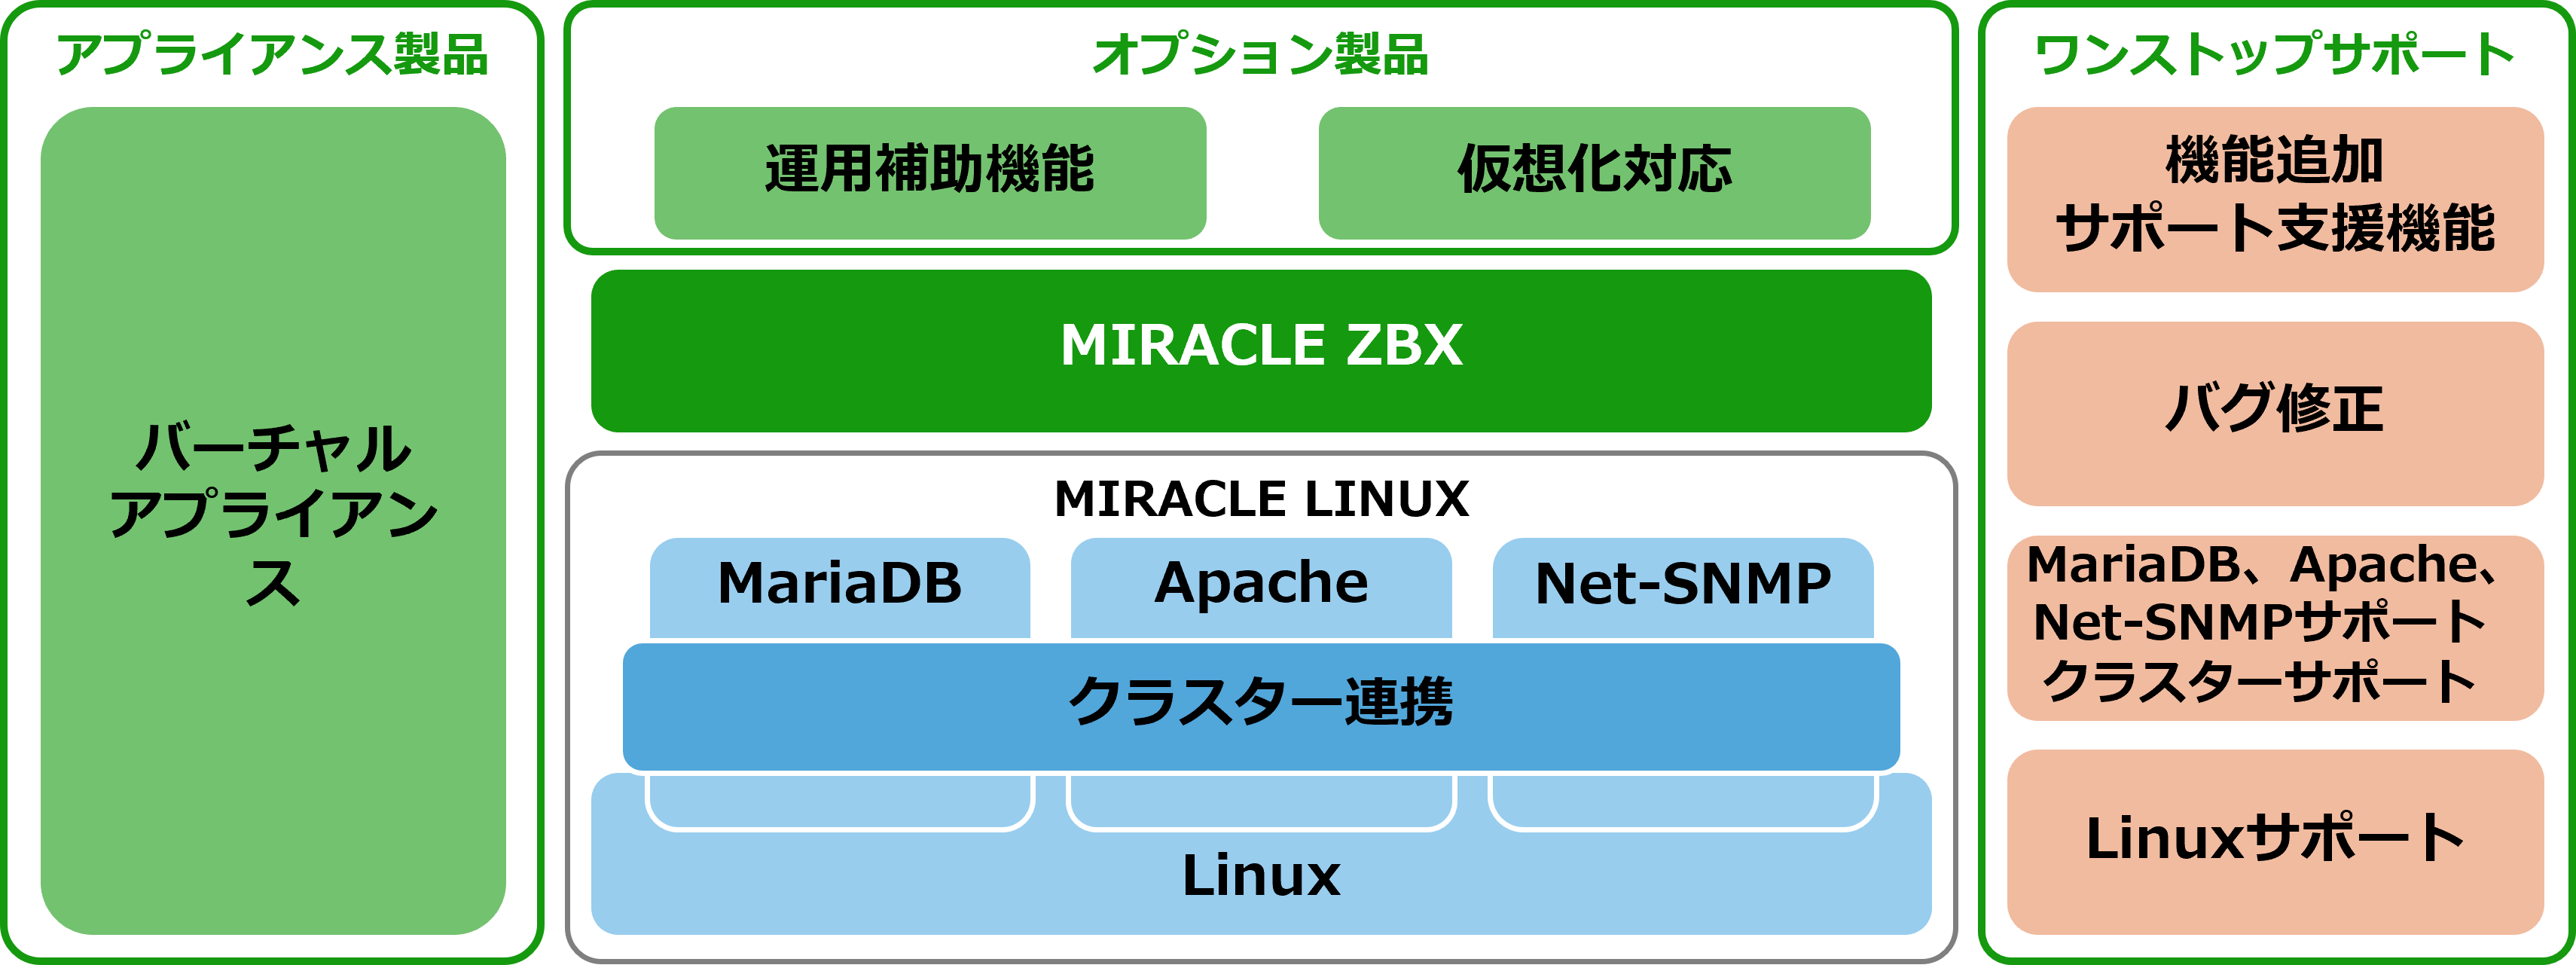 MIRACLE ZBX シリーズの構成図